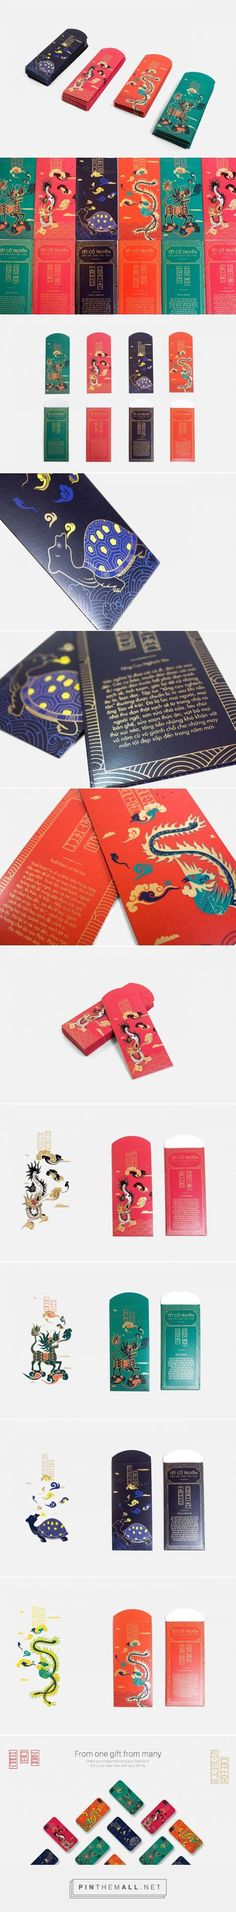 Red Envelope for Lunar New Year (New Products Design) Envelope Design, Red Envelope, Packaging Design Inspiration, Graphic Design Inspiration, Design Poster, Print Design, New Year Packages, Branding Design, Logo Design